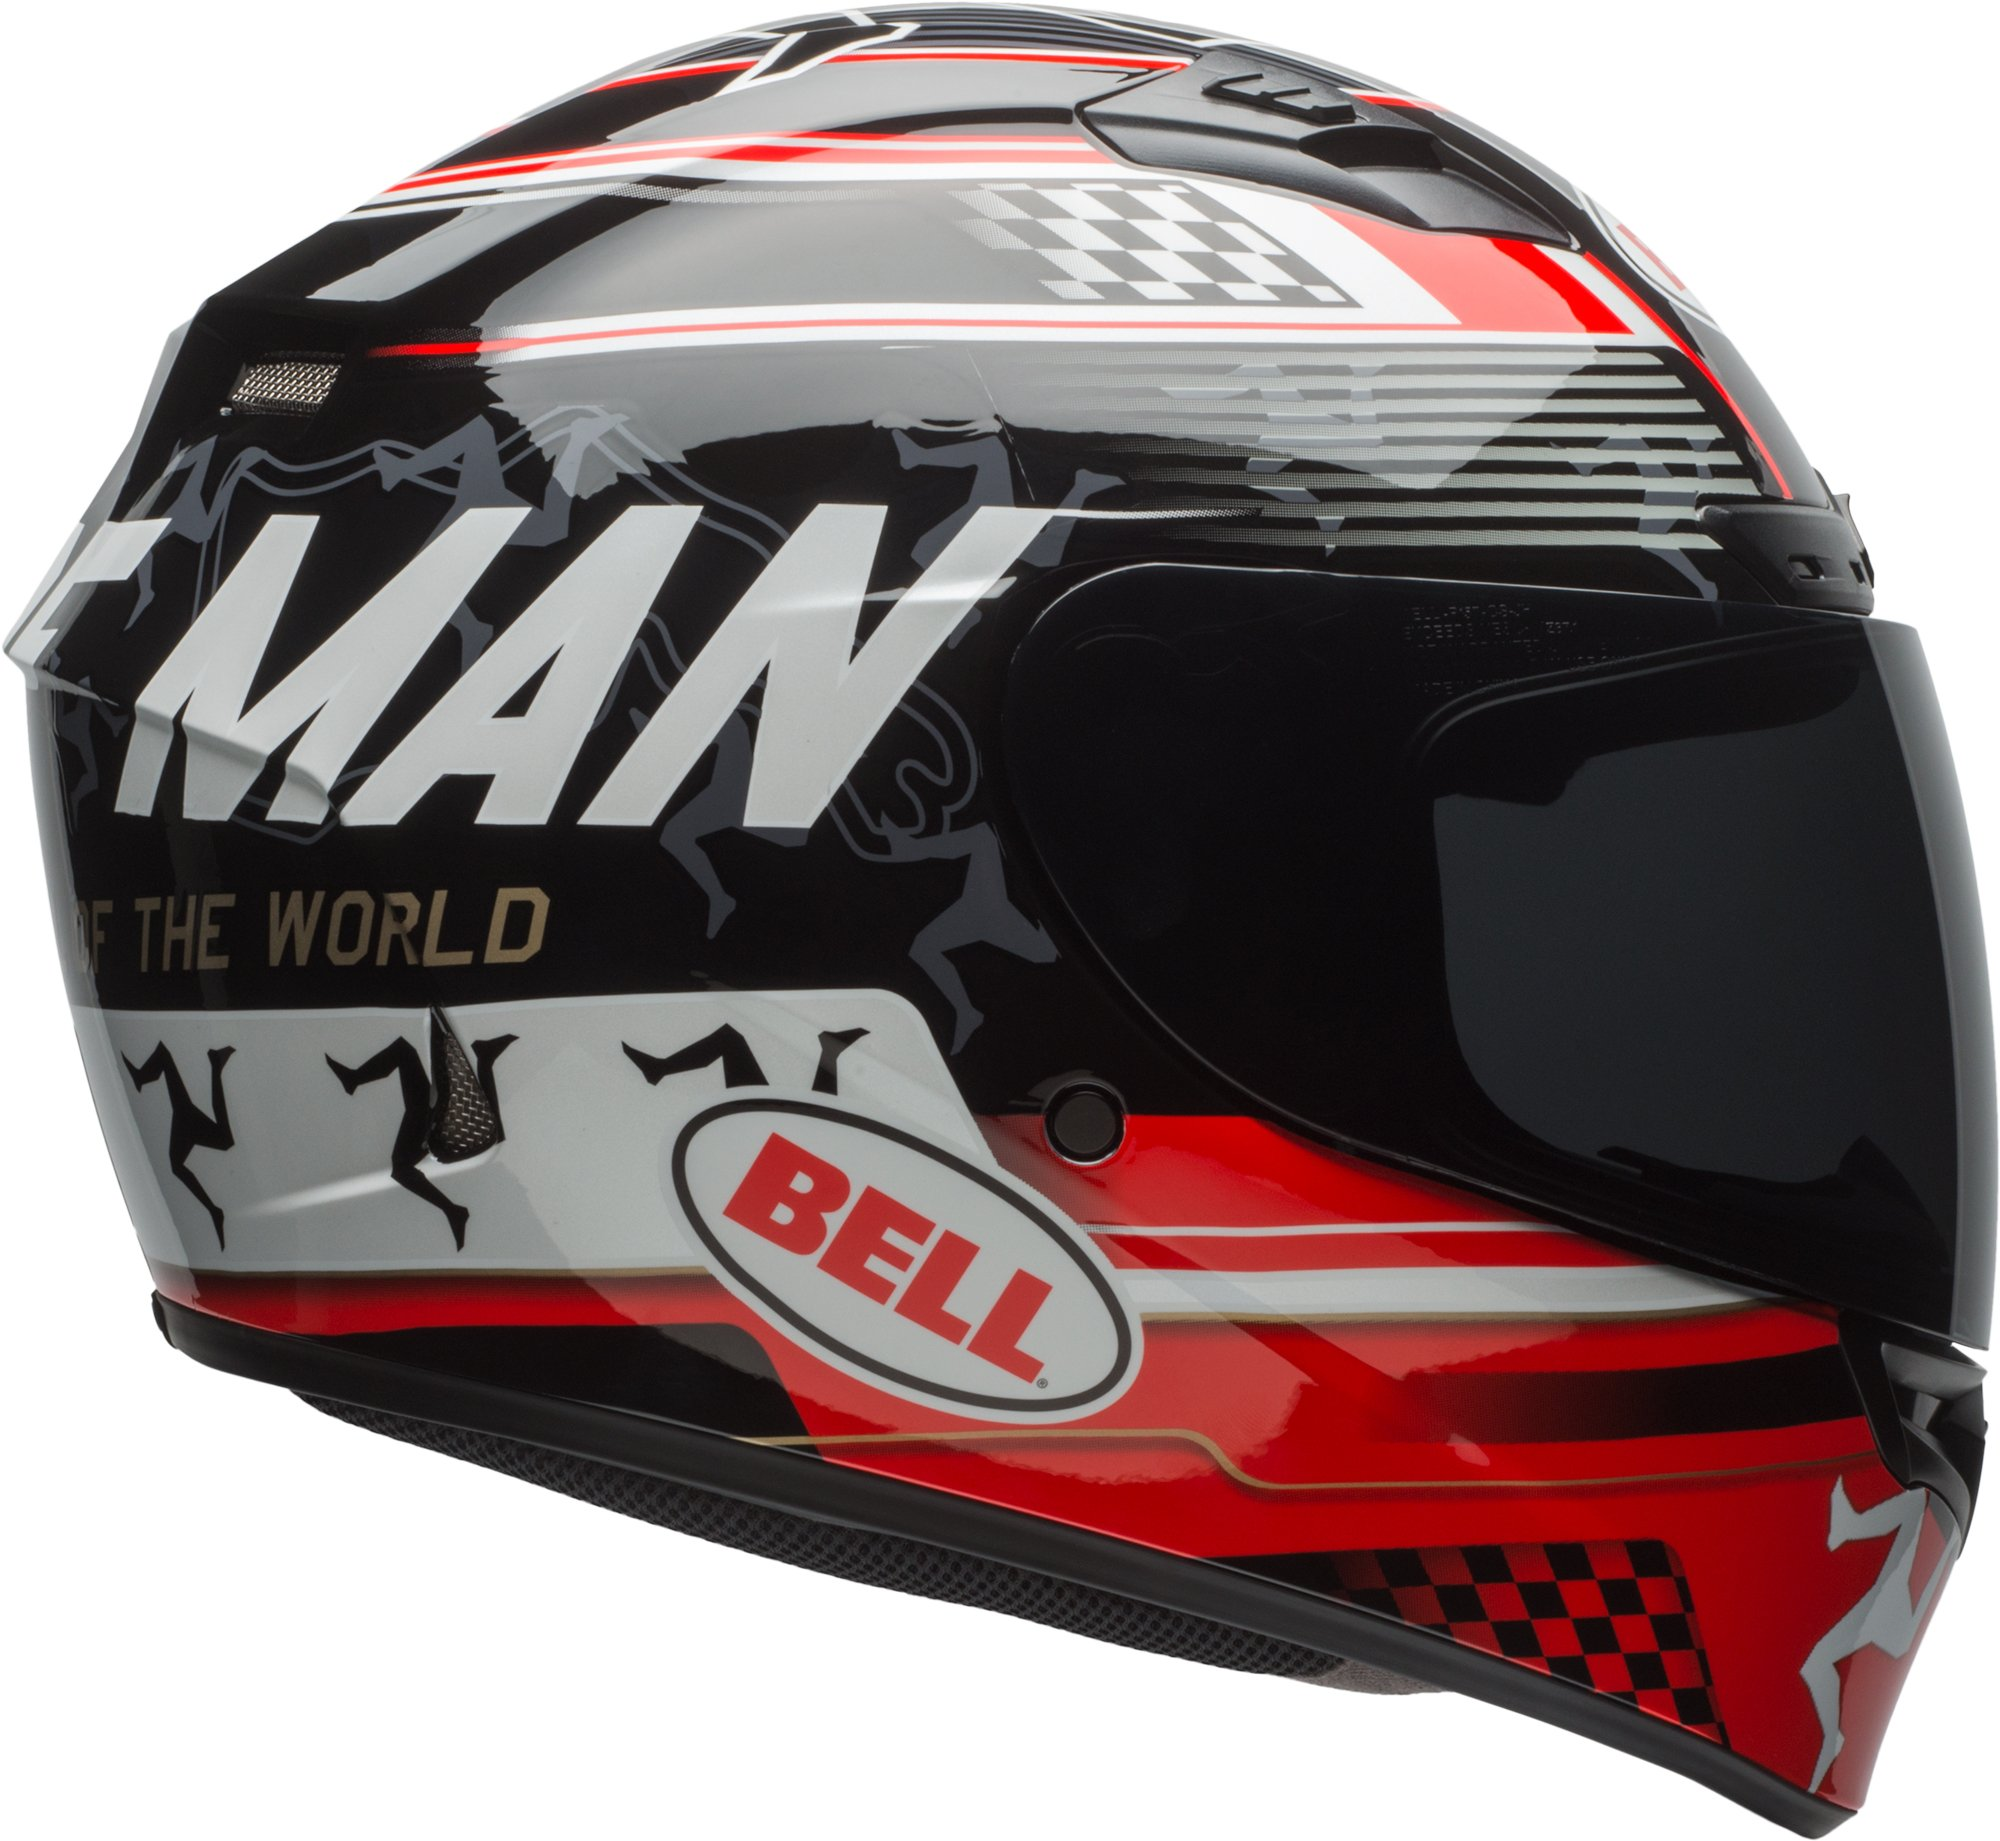 Bell Qualifier DLX Isle Of Man Black/Red Full Face Helmet - X-Large by Bell (Image #2)